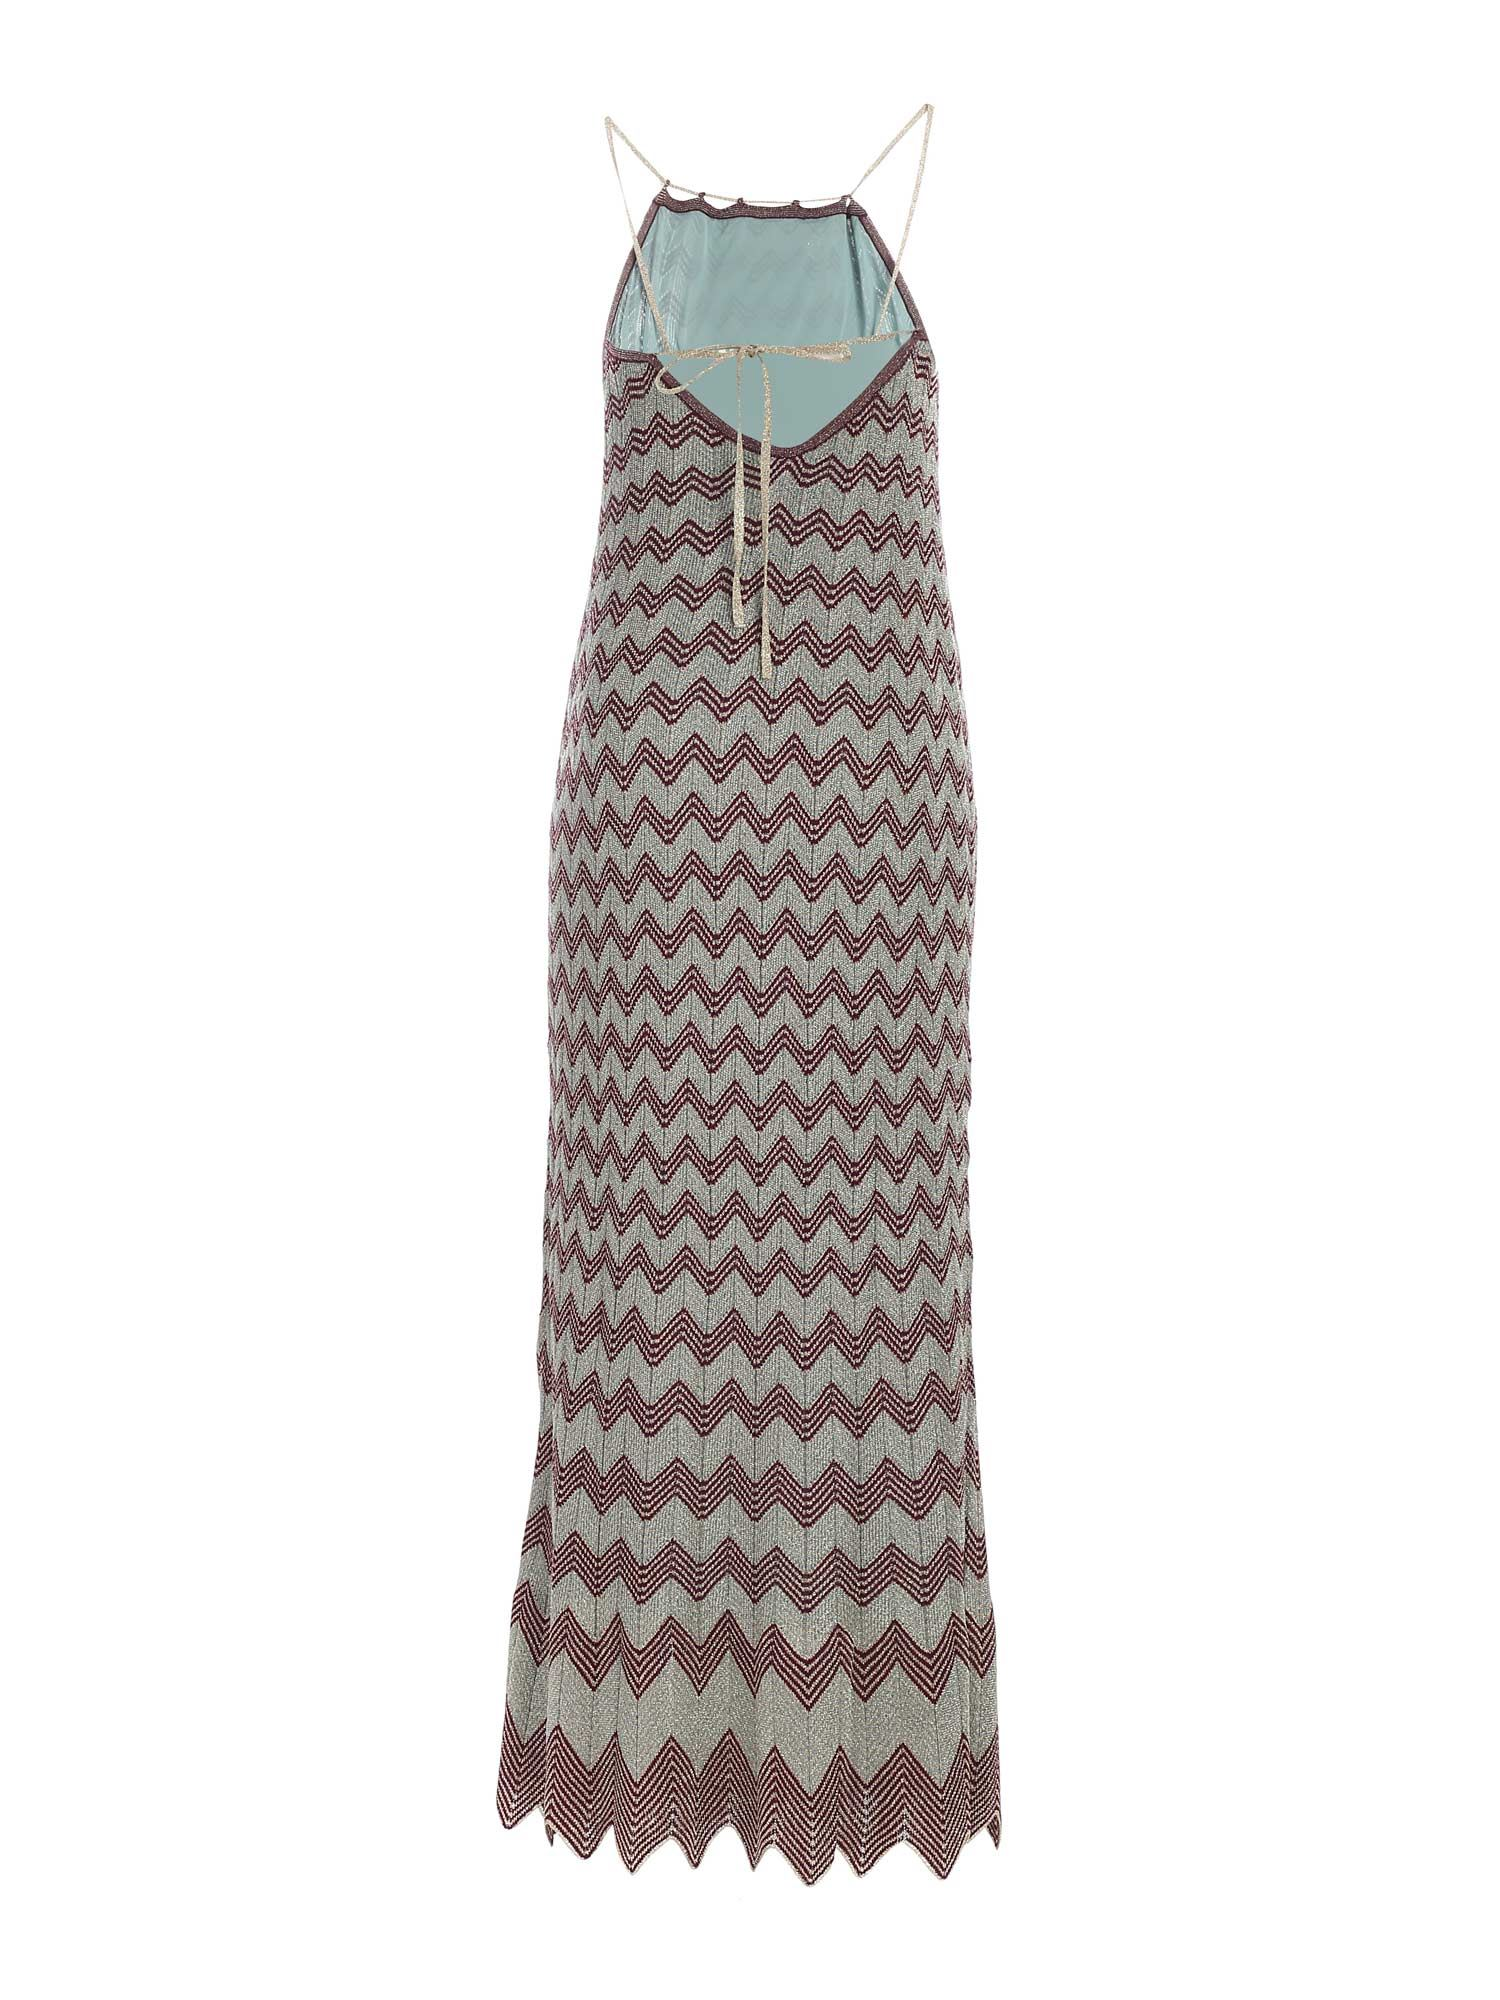 LAMÉ KNITTED DRESS IN LIGHT BLUE AND GOLD M MISSONI | 11 | 2DG005912K0094L401N